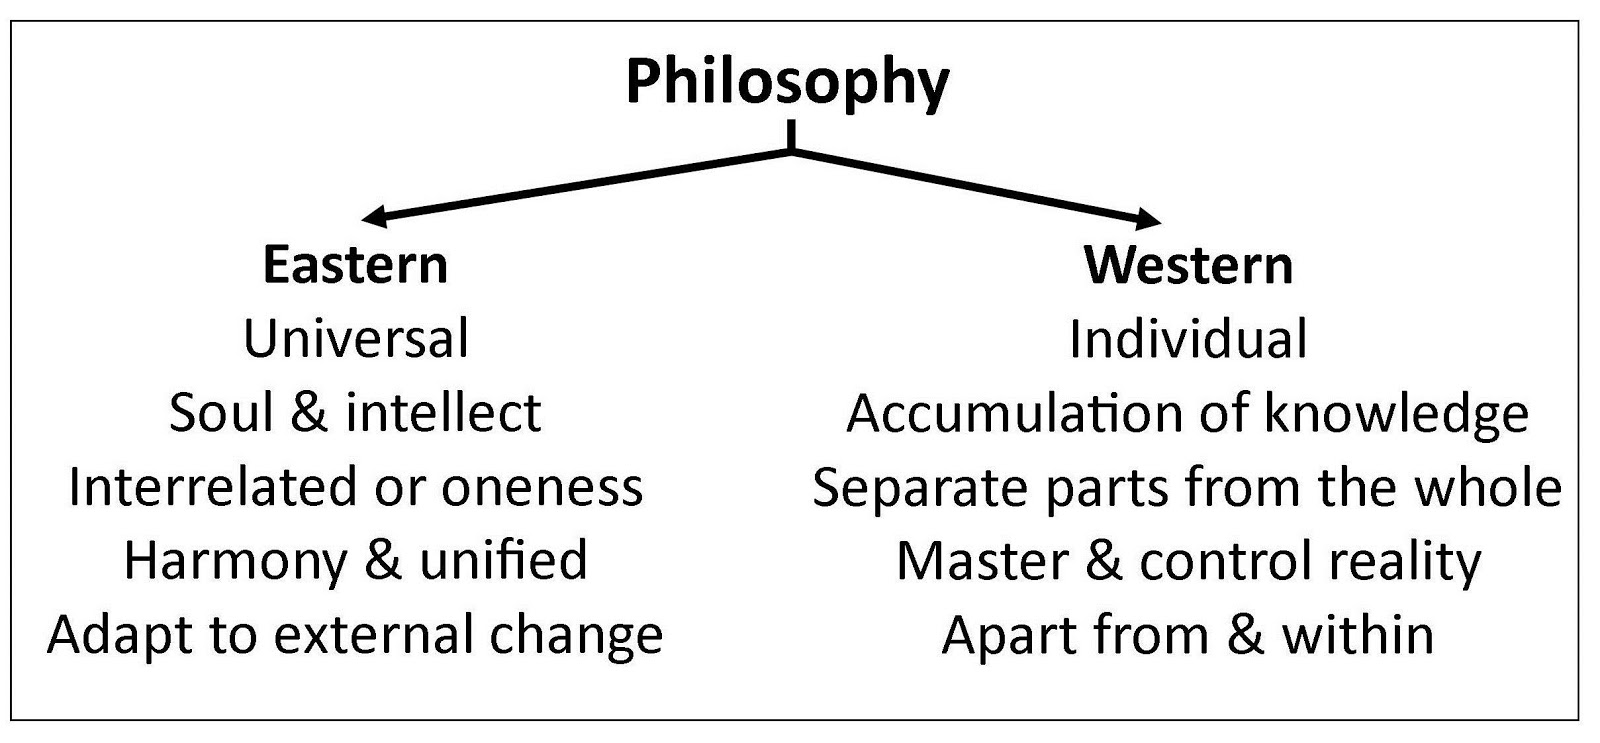 Essay on western vs eastern philosophy